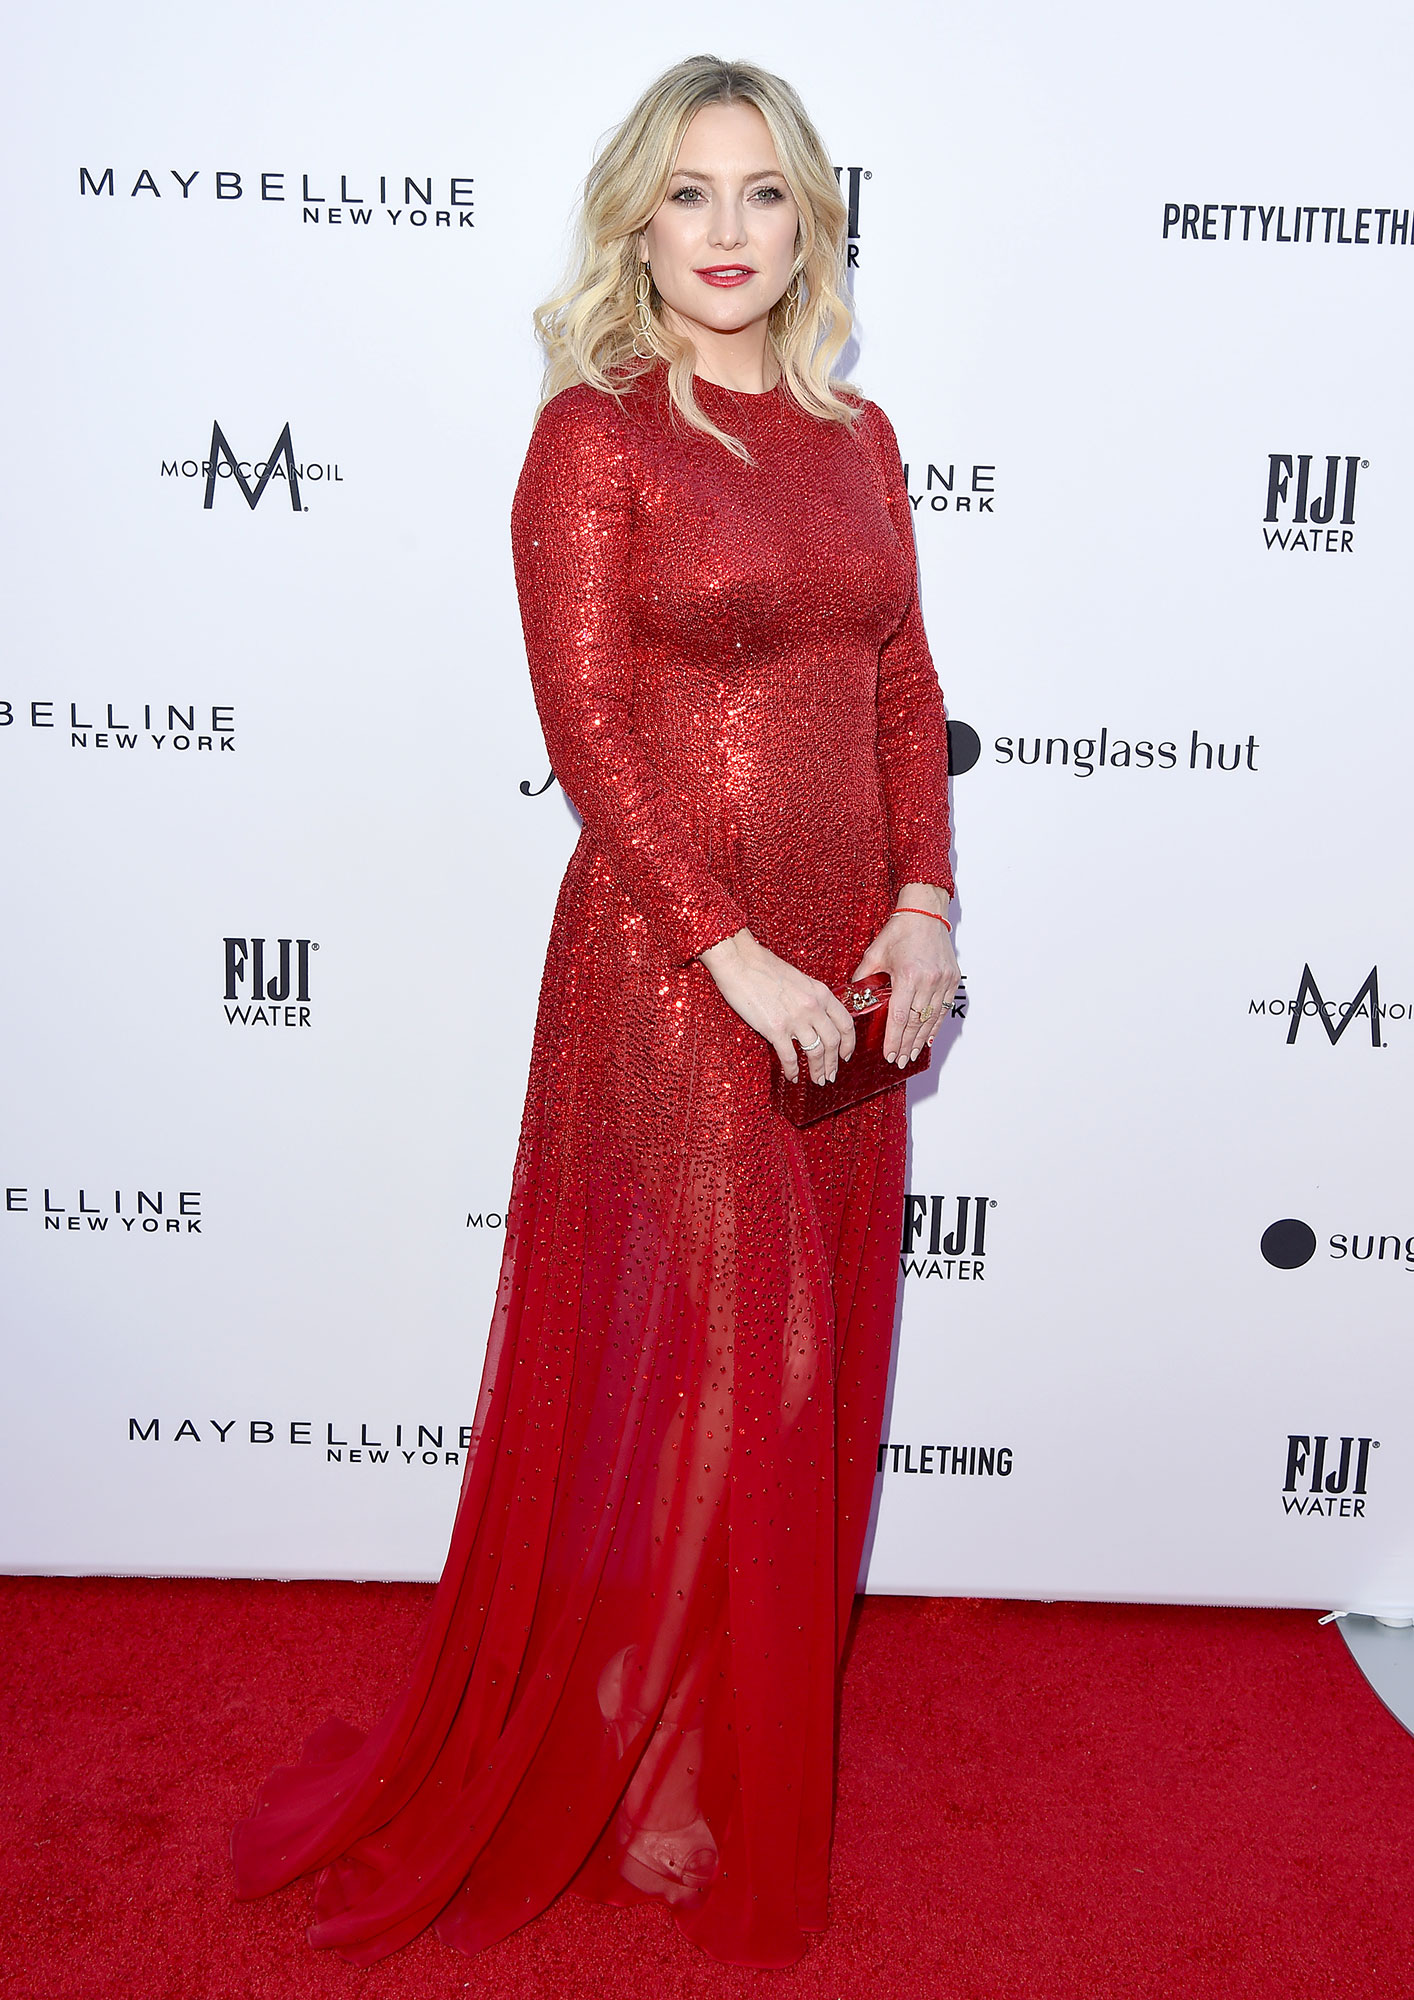 Stars Brought Their Style A-Game to the Daily Front Row Fashion Awards - The Fabletics founder stunned in a red Oscar de la Renta gown with a shiny matching clutch.